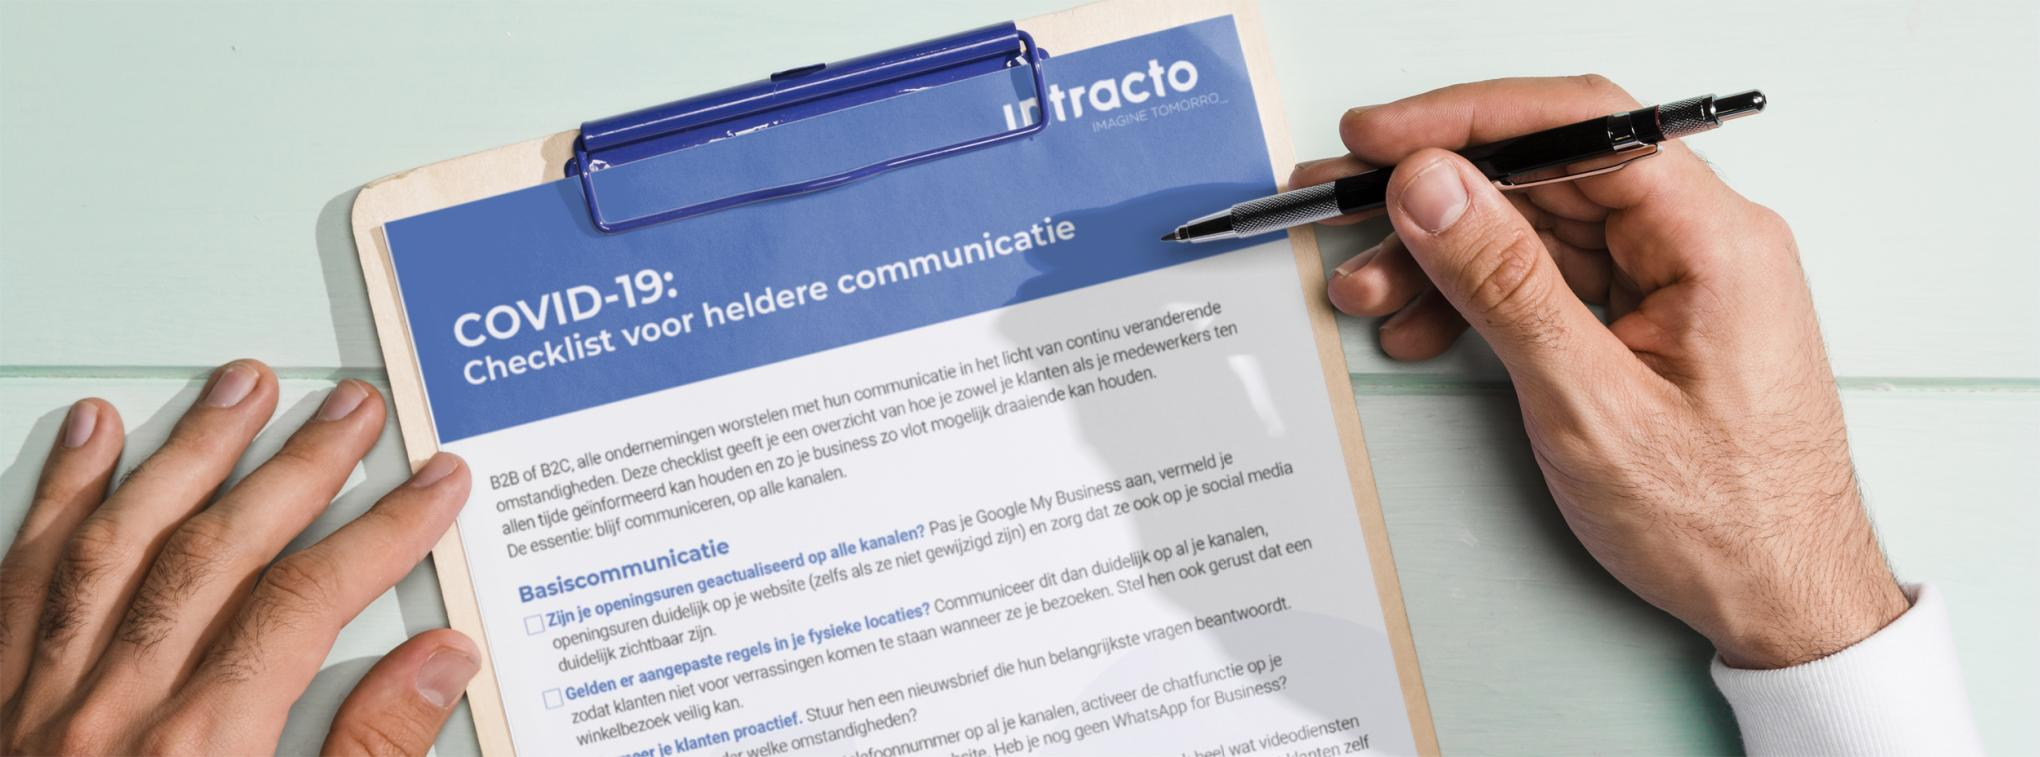 COVID-19: Checklist heldere communicatie